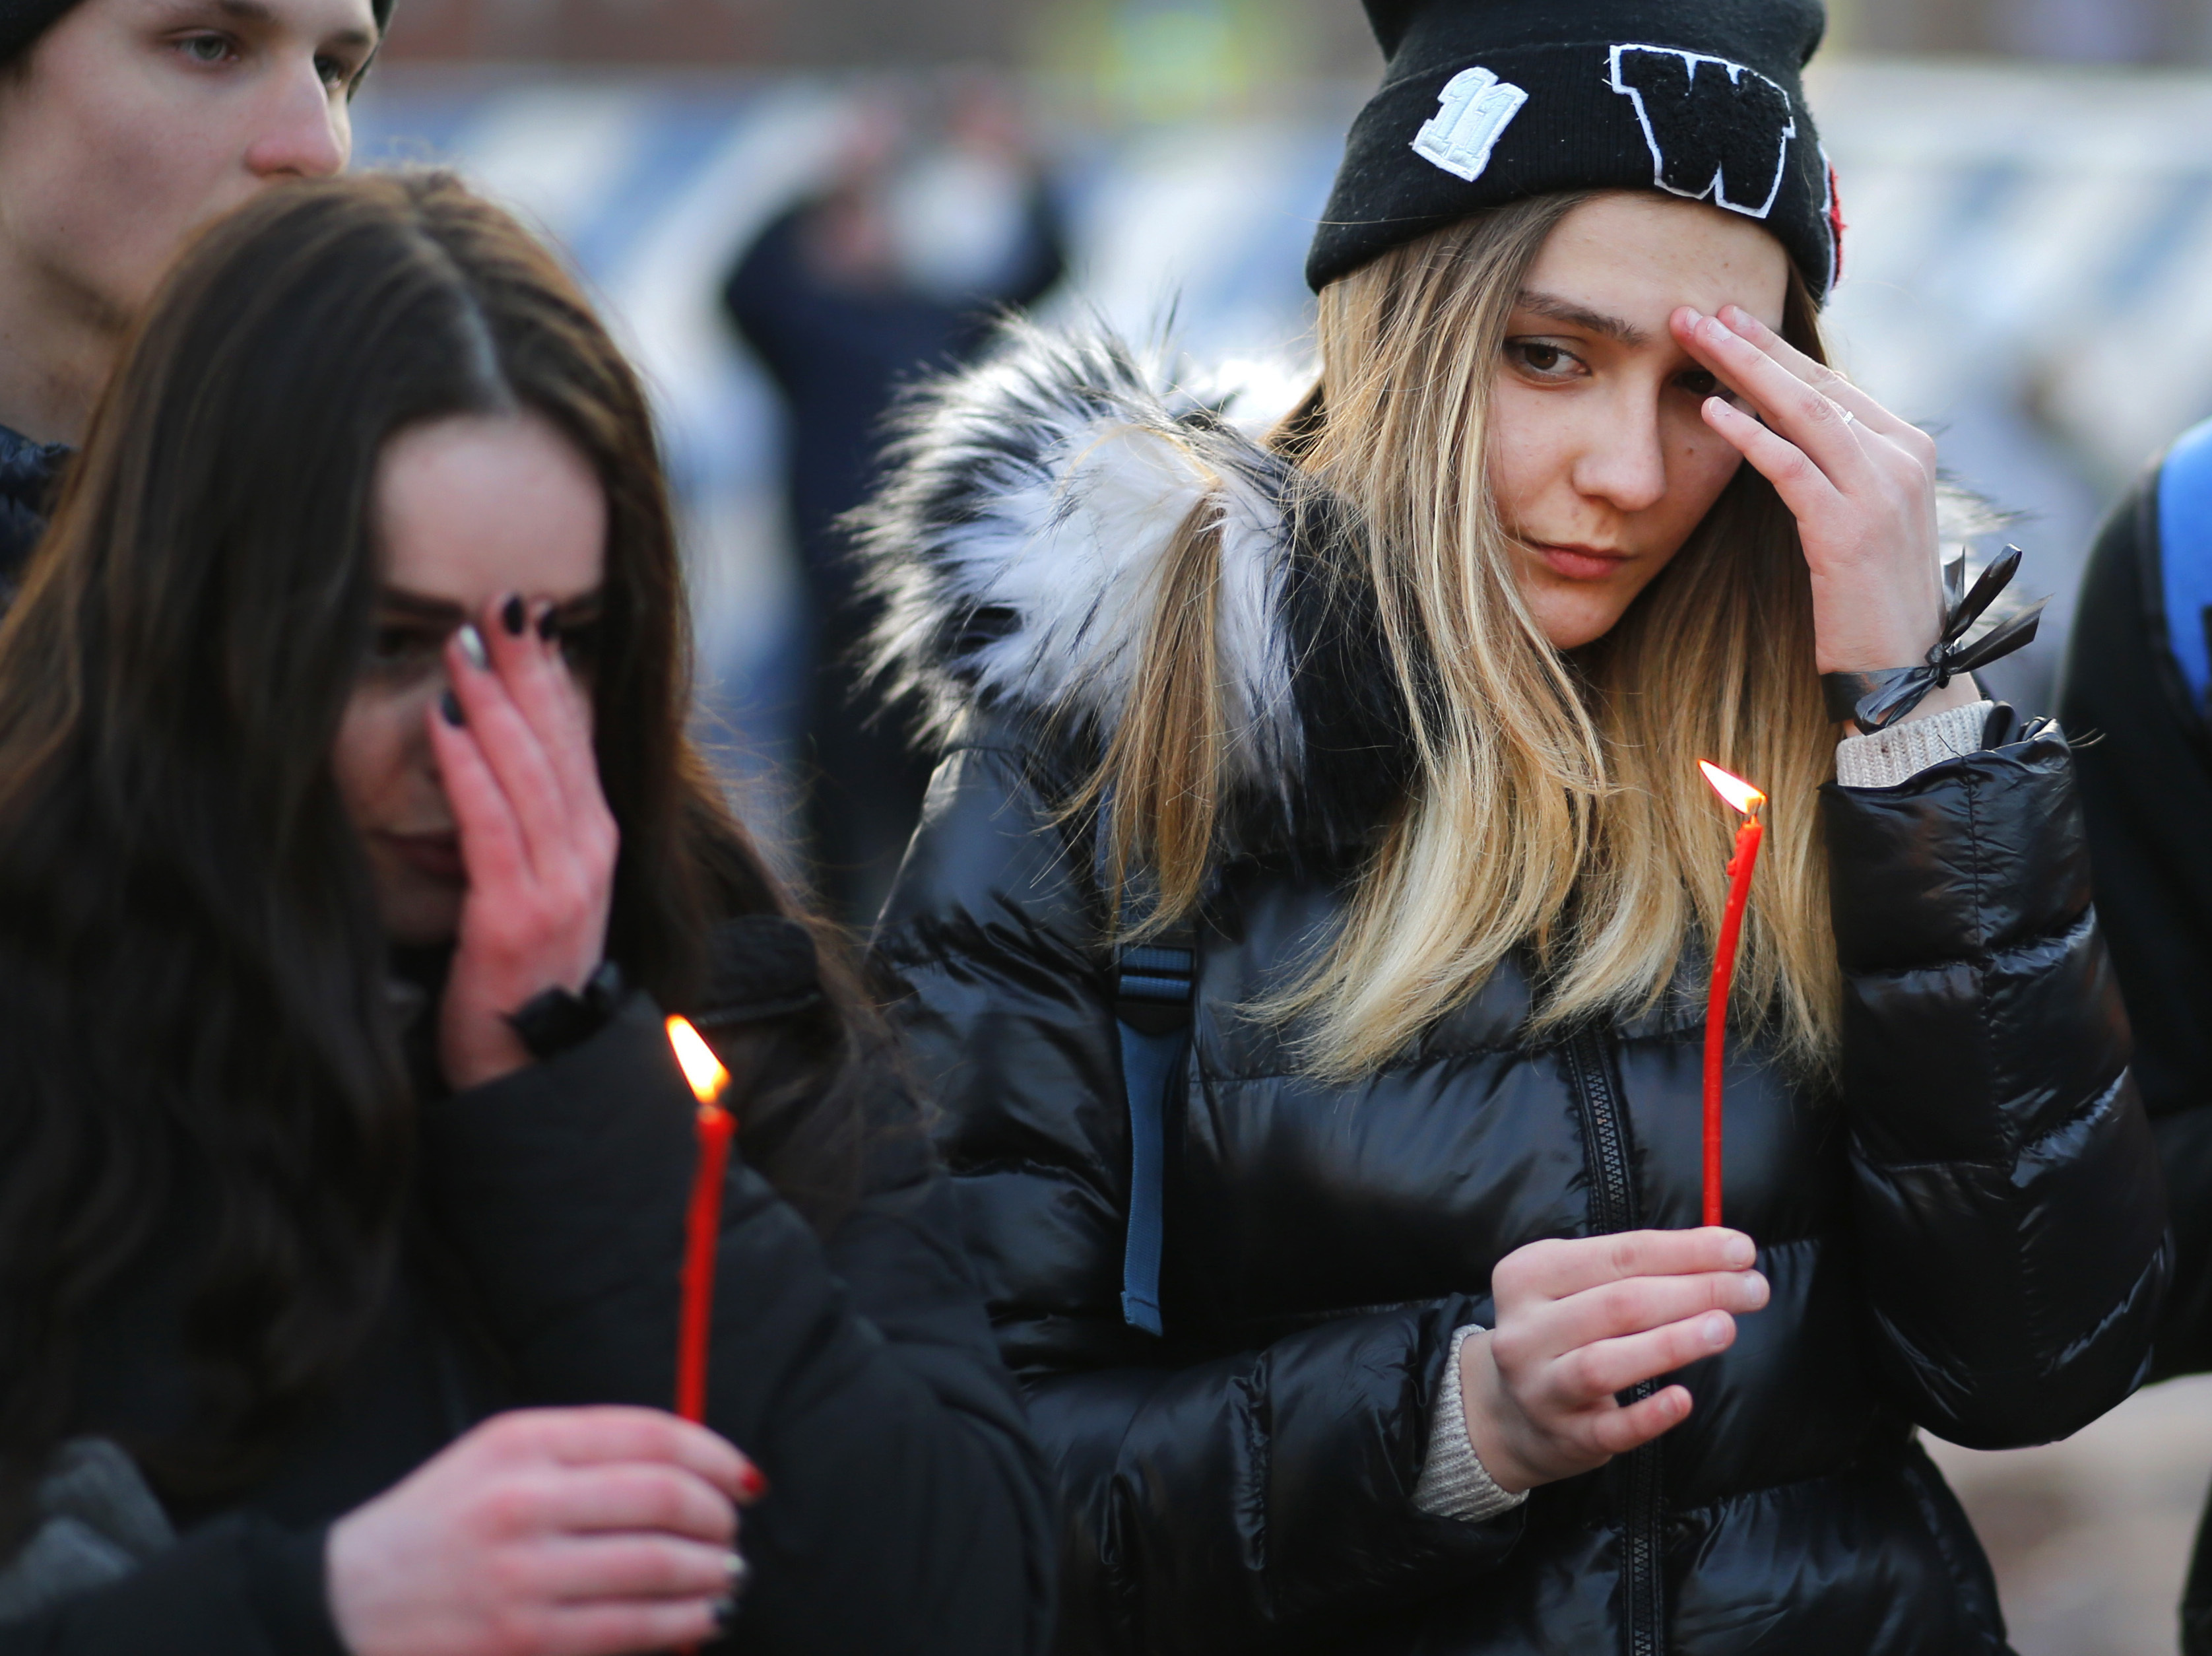 Kemerovo fire: First funerals held for victims as day of mourning declared